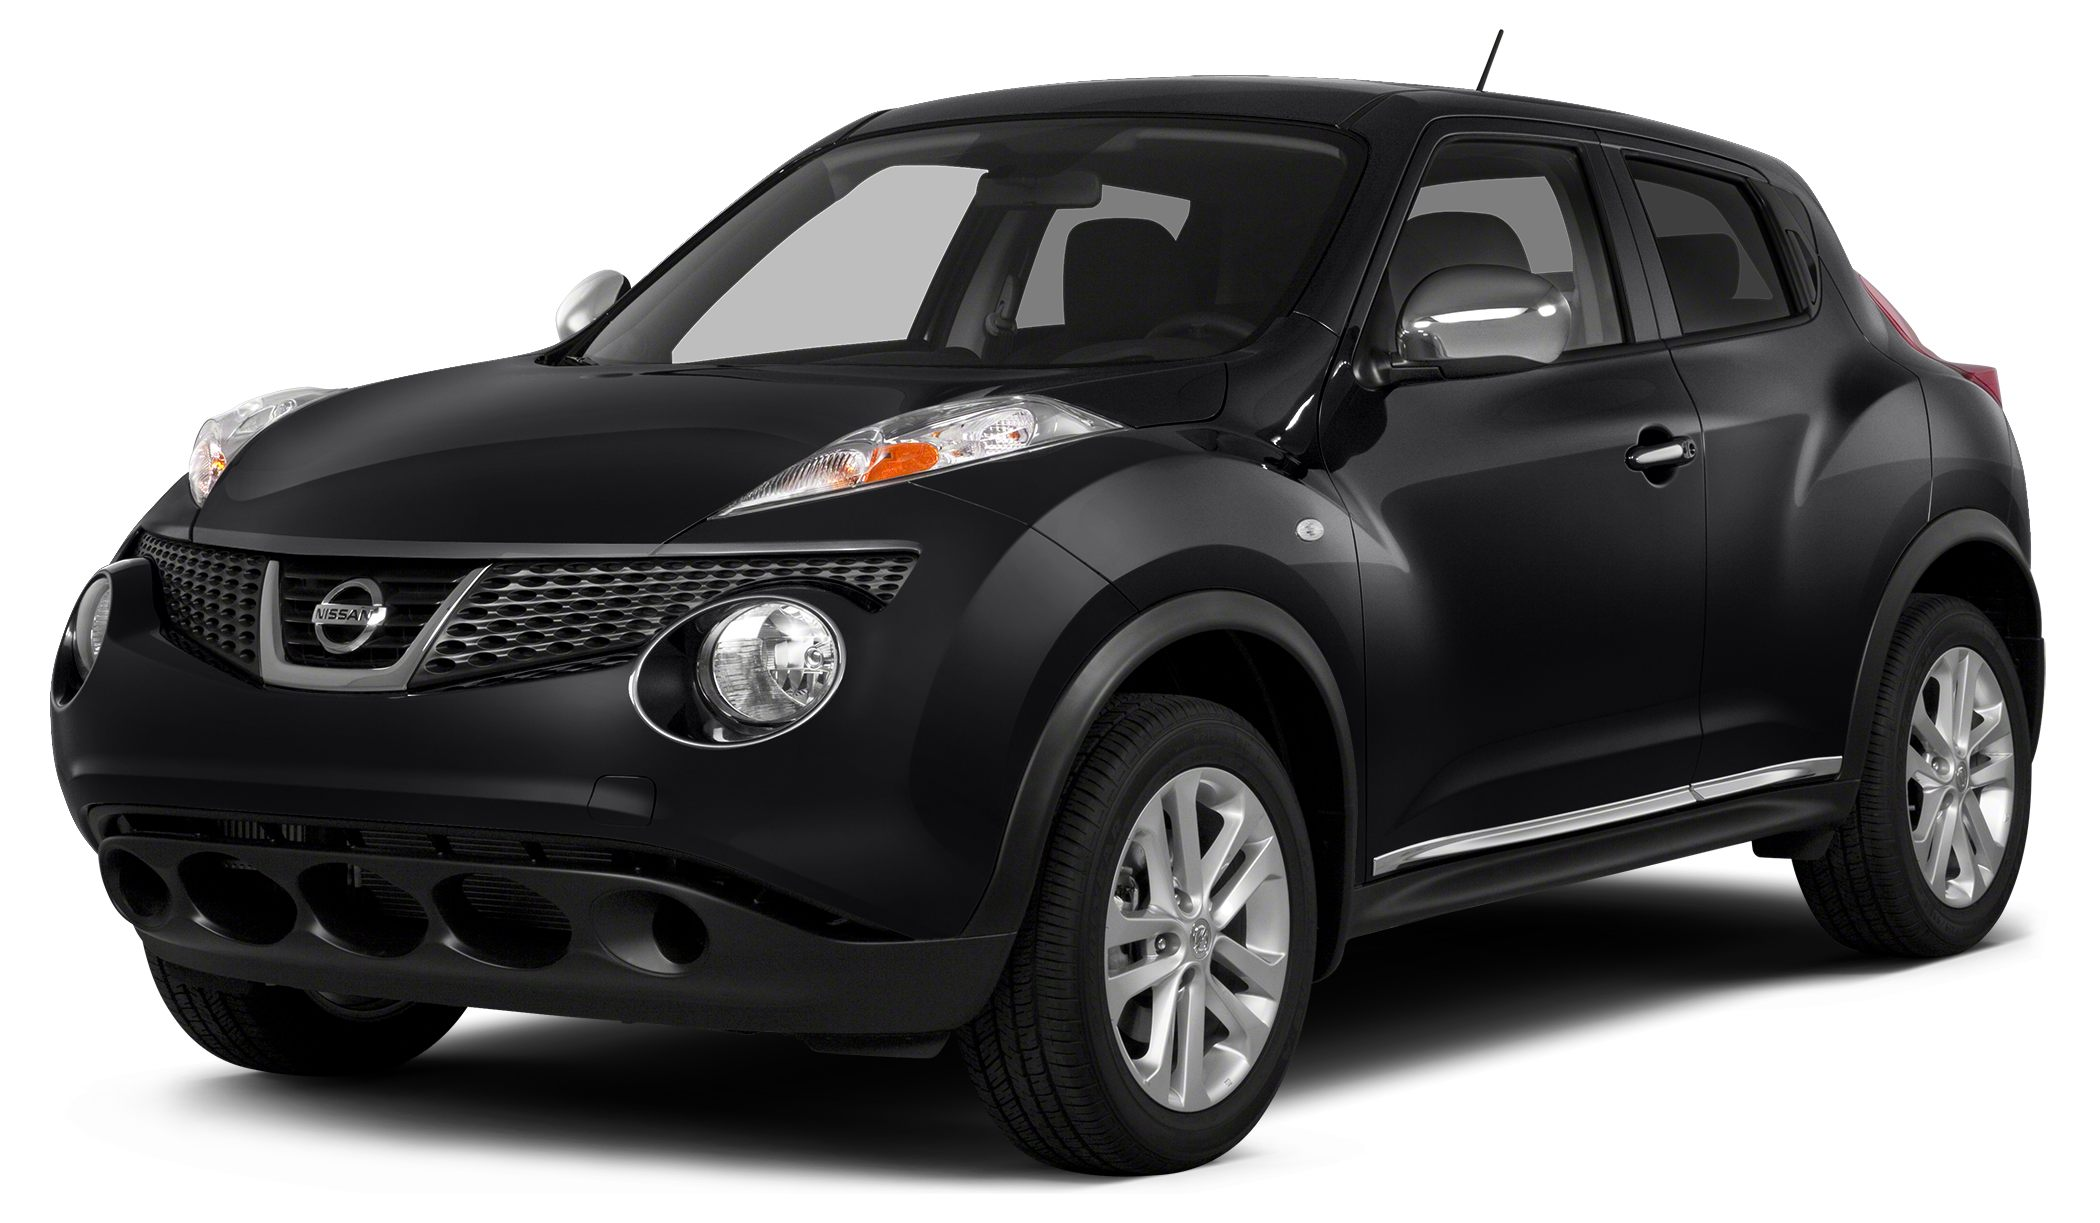 2014 Nissan Juke S For Internet Pricing and InformationPlease call Teresa Brown  866-387-3798It w